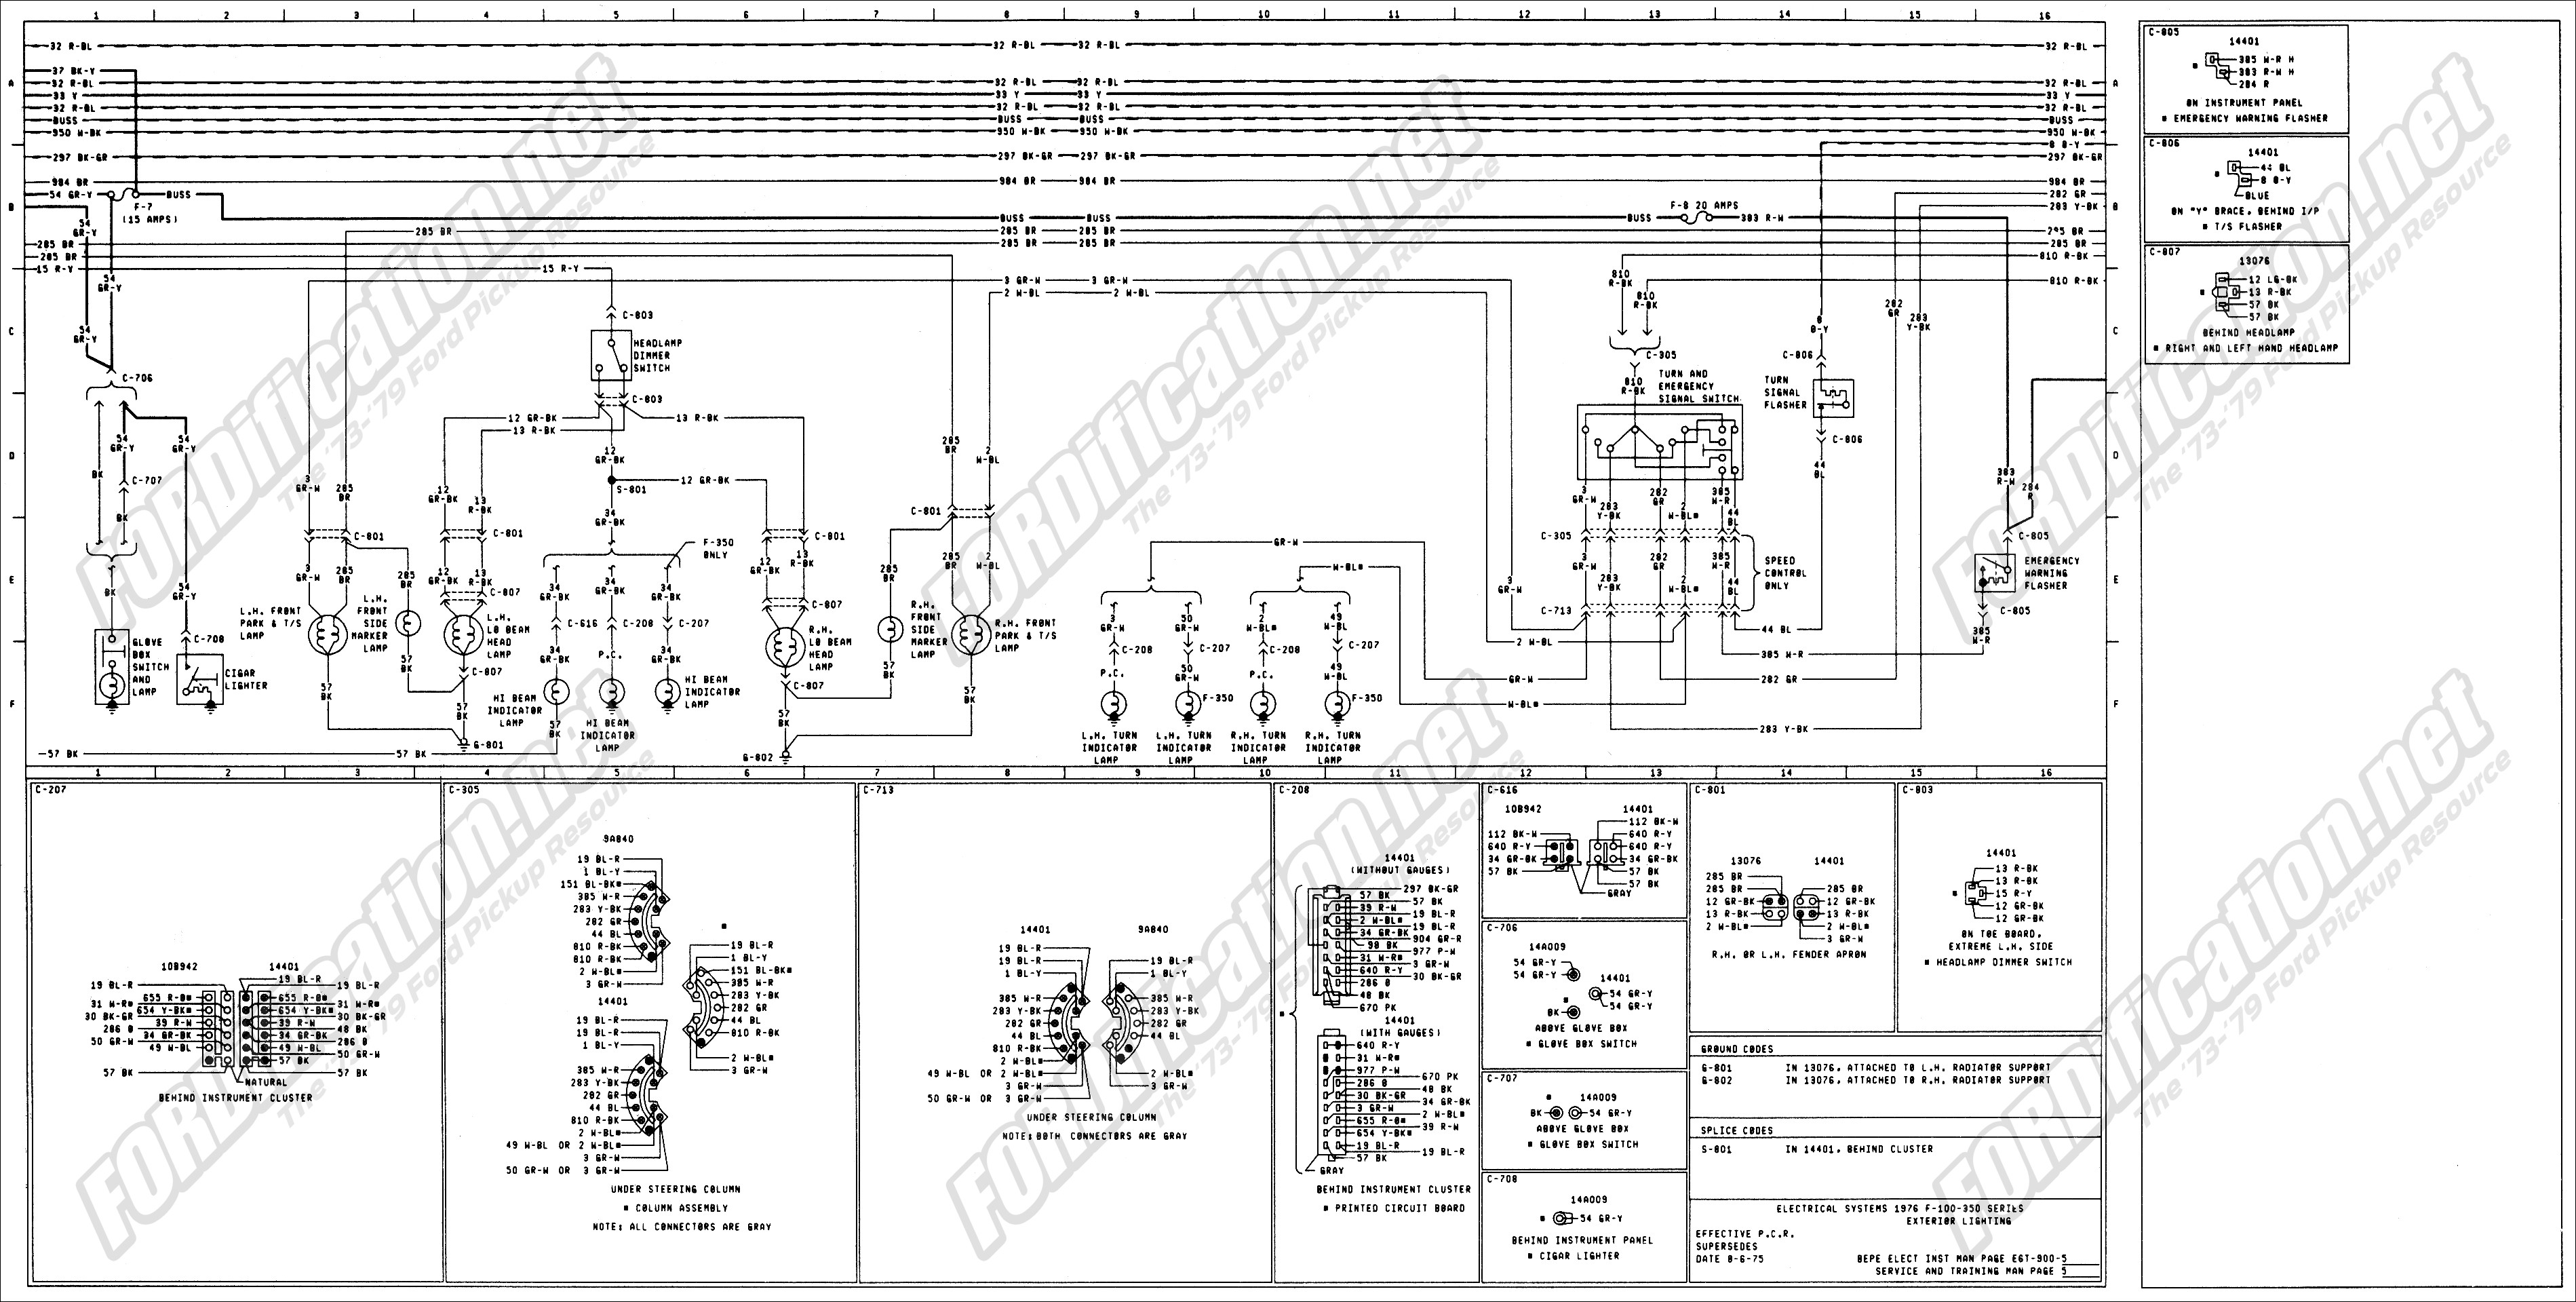 Tail Light Wiring Diagram ford F150 77 ford F250 Wiring Diagram Wiring Info • Of Tail Light Wiring Diagram ford F150